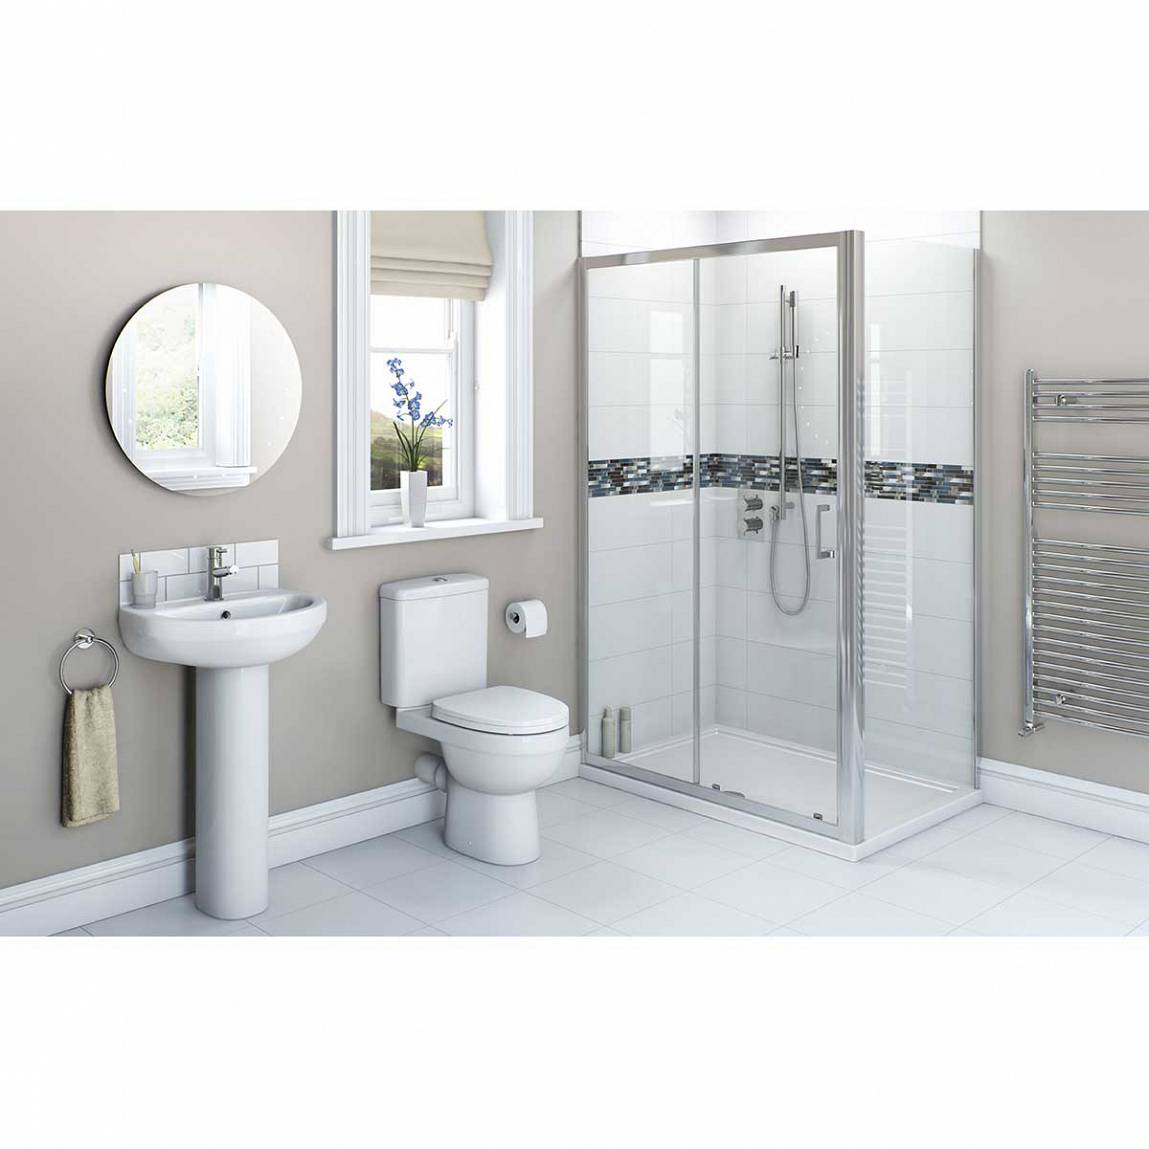 Image of Energy Bathroom set with 1200x700 Sliding Enclosure & Tray